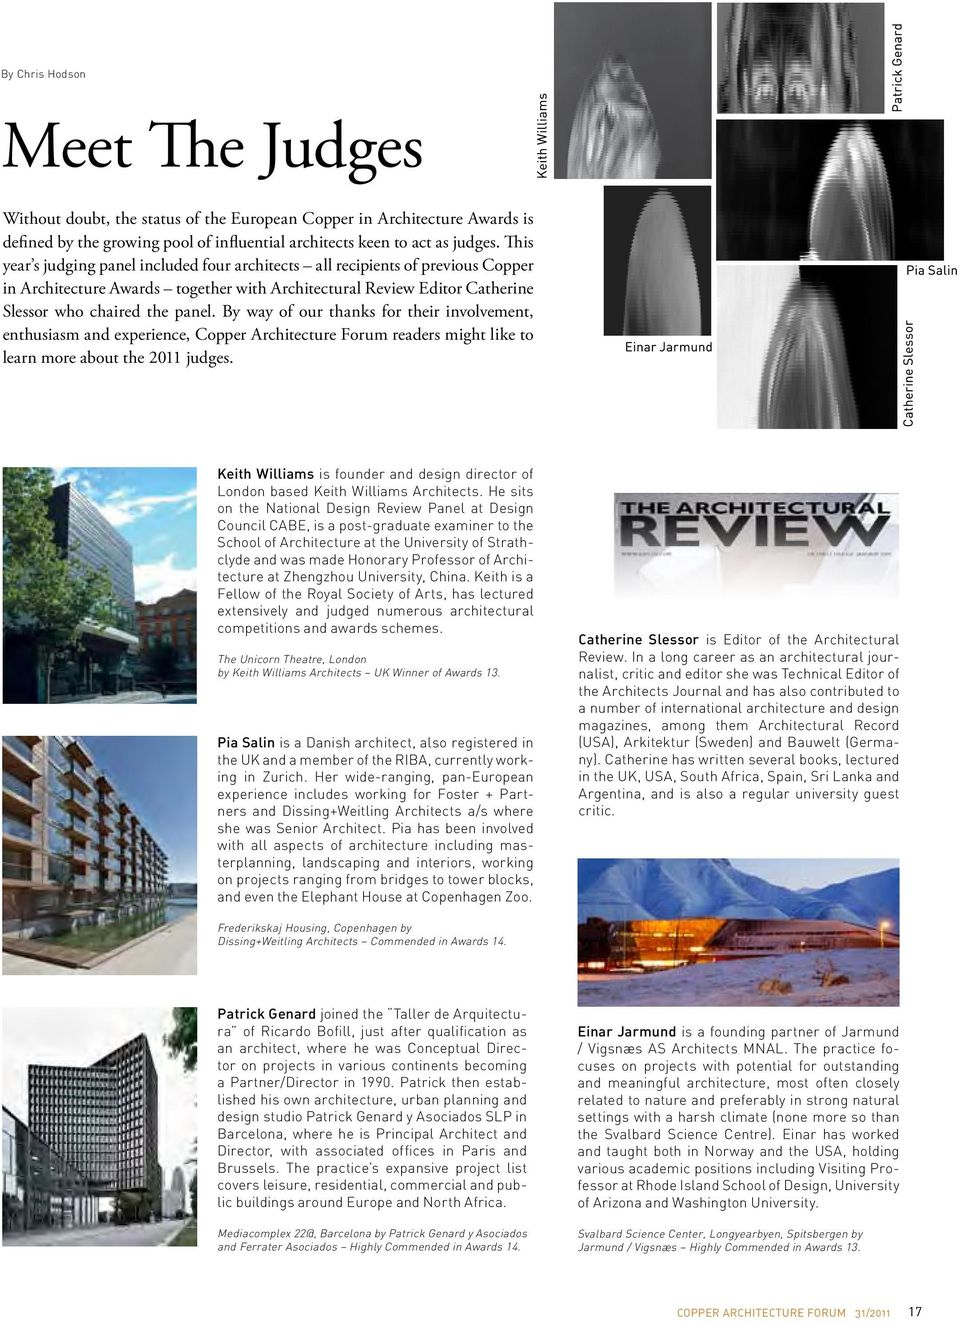 By way of our thanks for their involvement, enthusiasm and experience, Copper Architecture Forum readers might like to learn more about the 2011 judges.